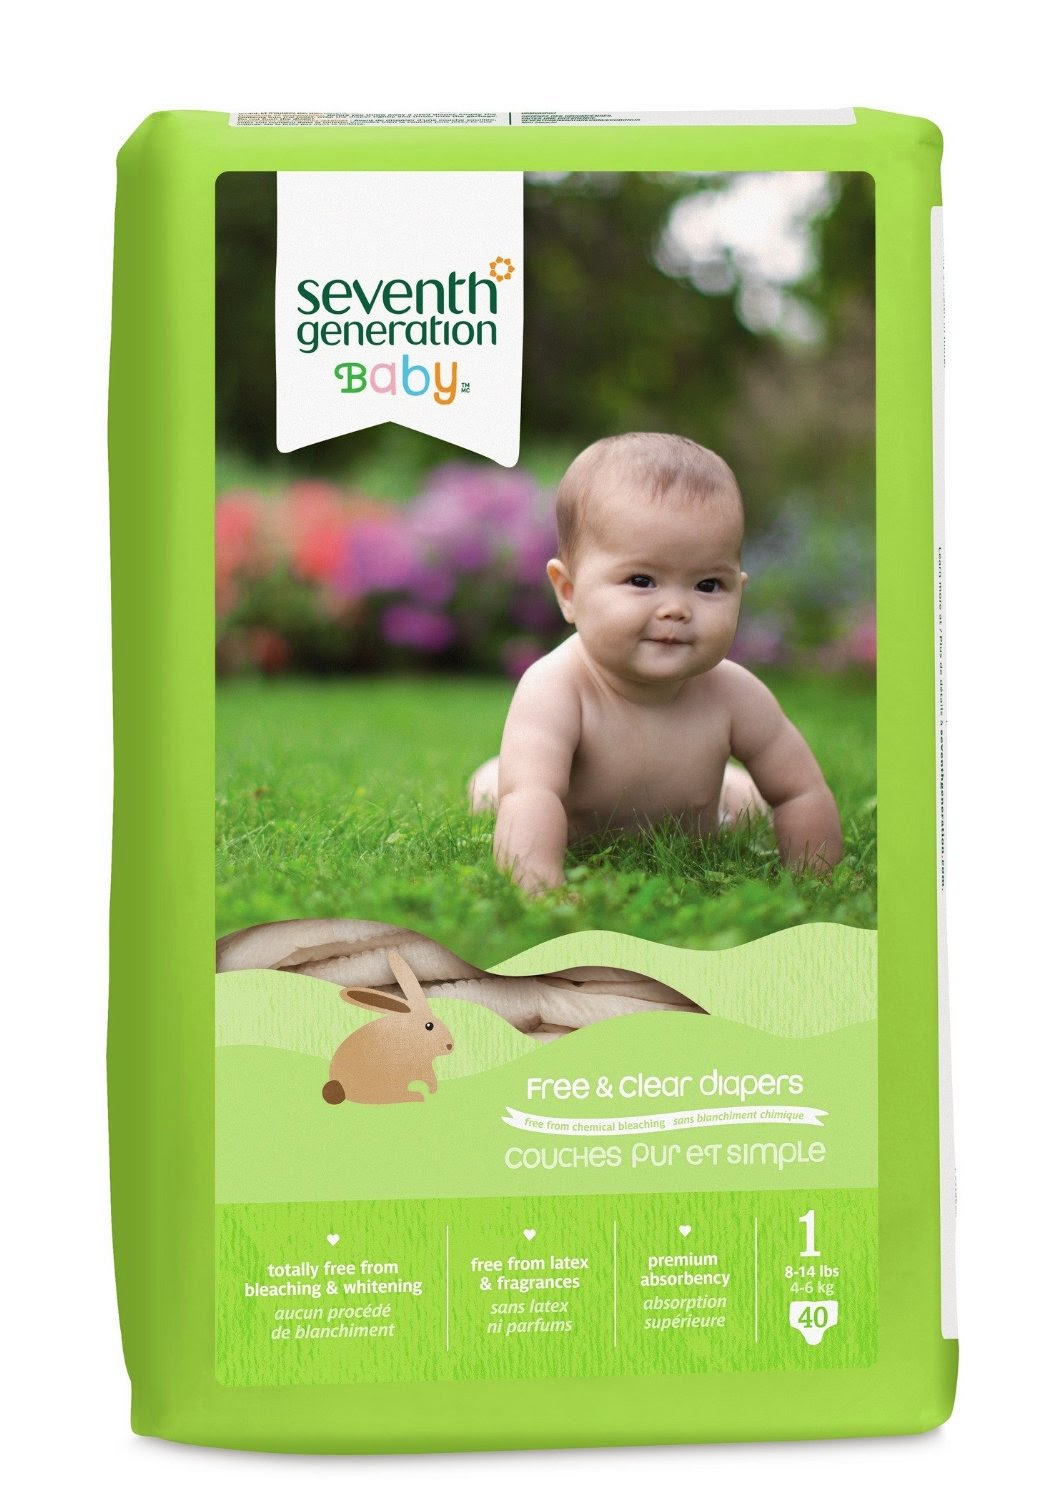 https://www.amazon.com/Seventh-Generation-Clear-Diapers-Count/dp/B008CO5ZD8/ref=as_li_ss_til?tag=soutsubusavi-20&linkCode=w01&creativeASIN=B008CO5ZD8